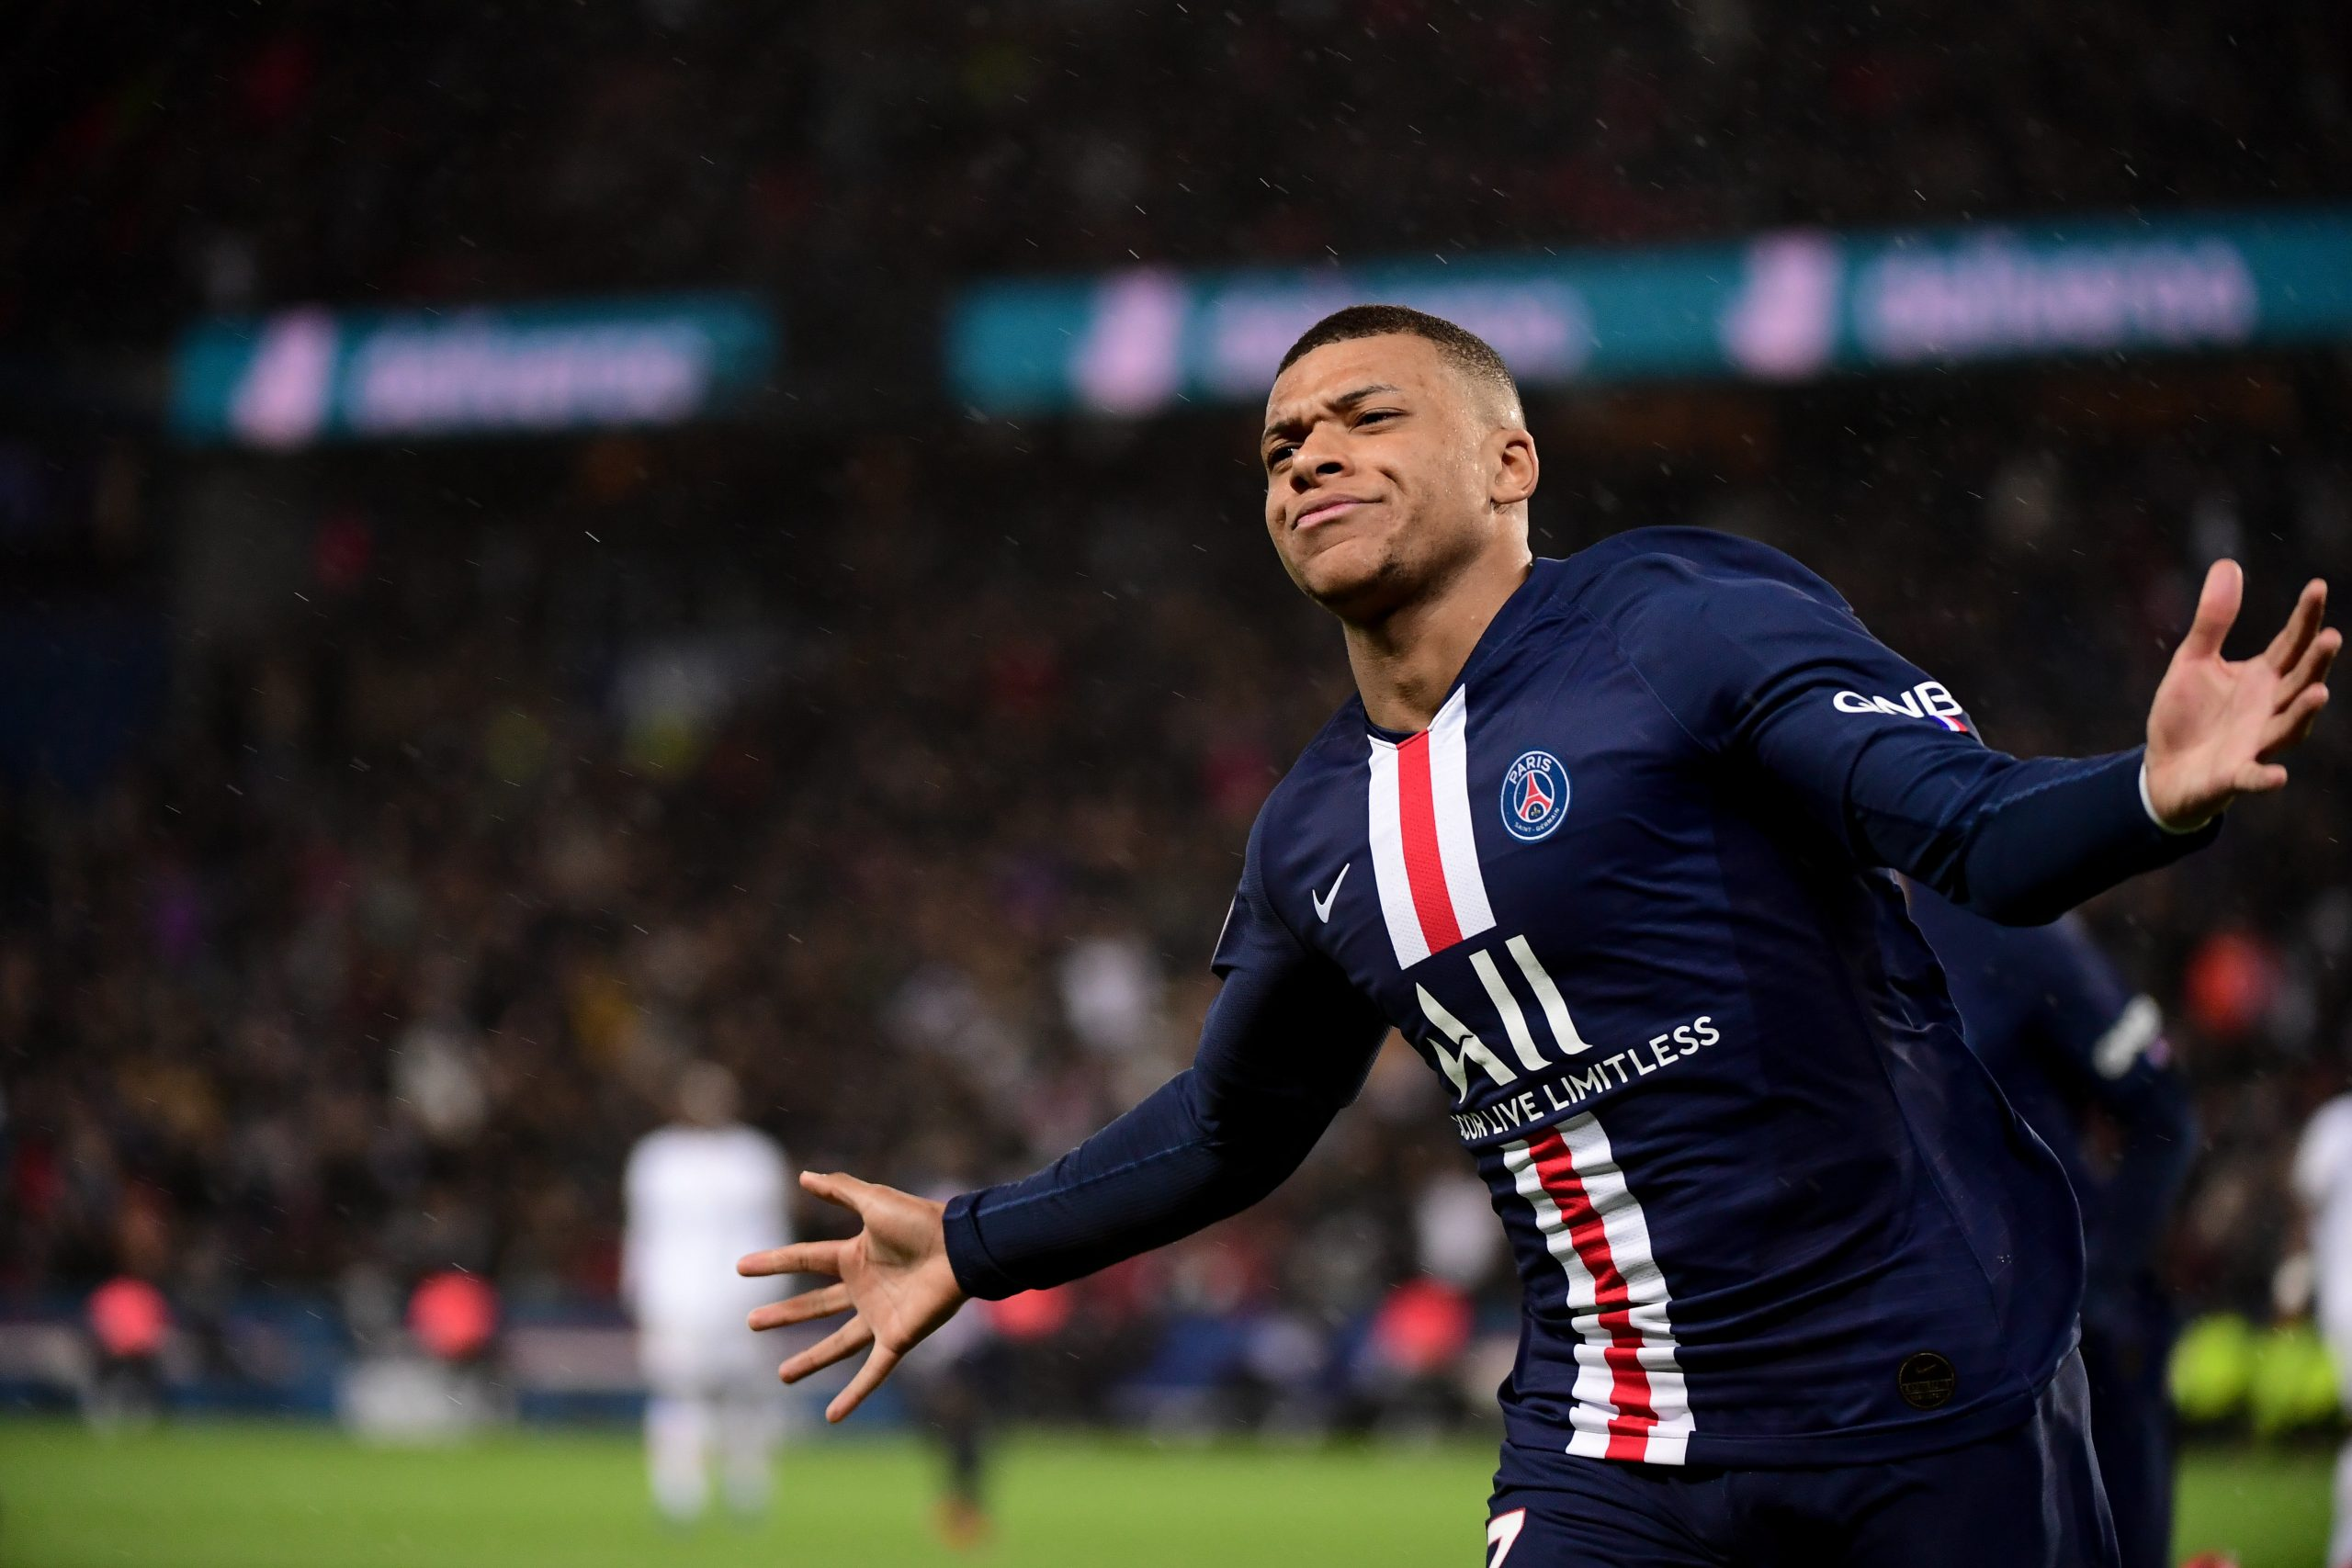 Mercato - Le transfert de Mbappé au Real Madrid attendra 2021, affirme As